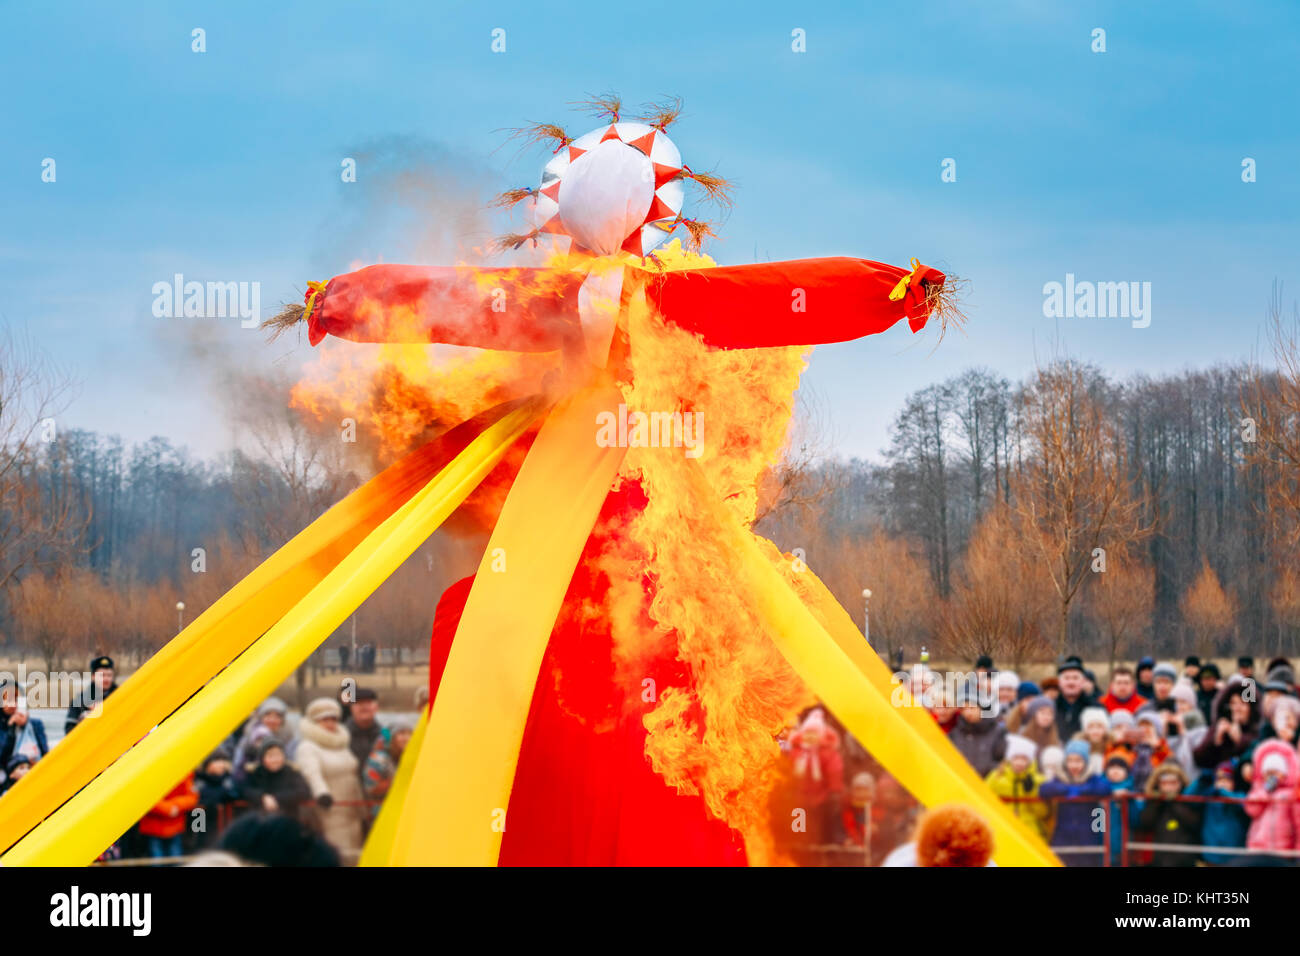 Gomel, Belarus. Burning Effigies Straw Maslenitsa In Fire On The Traditional National Holiday Dedicated To The Approach - Stock Image